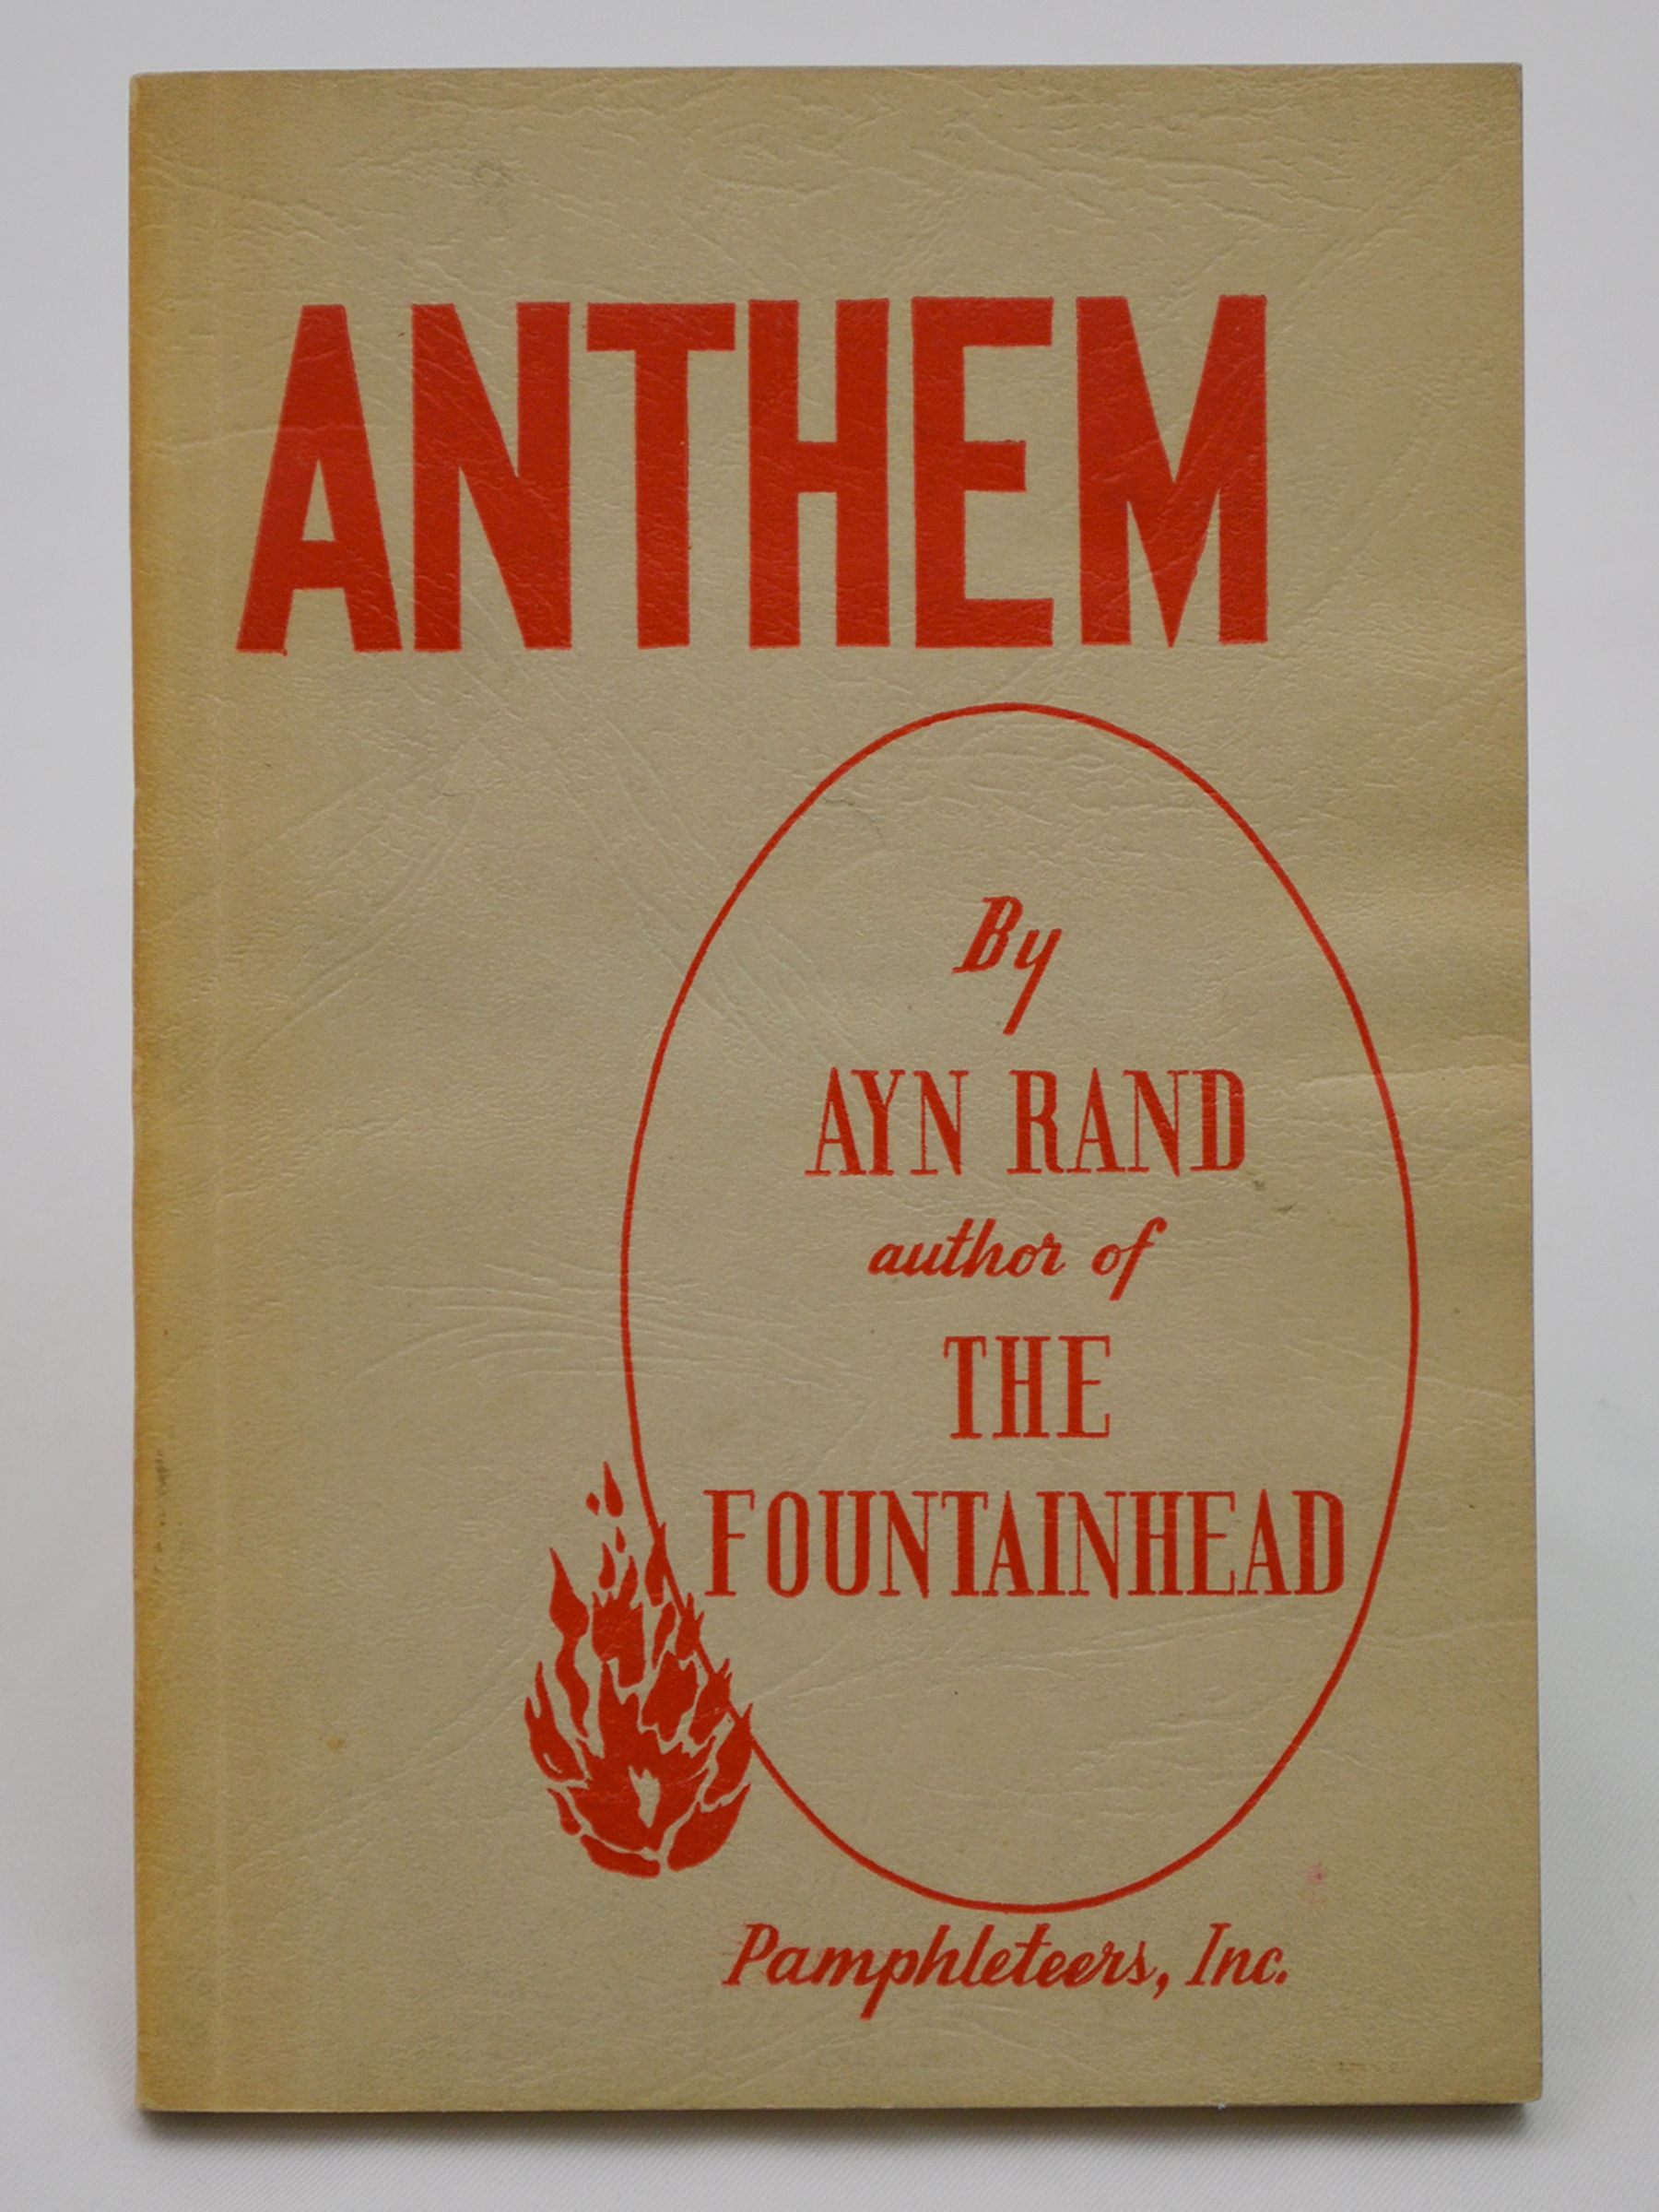 chicago atlas shrugged revolution dinner auction online anthem was first published in london in 1938 the american edition offered here was slightly revised by rand as explained in her author s foreword